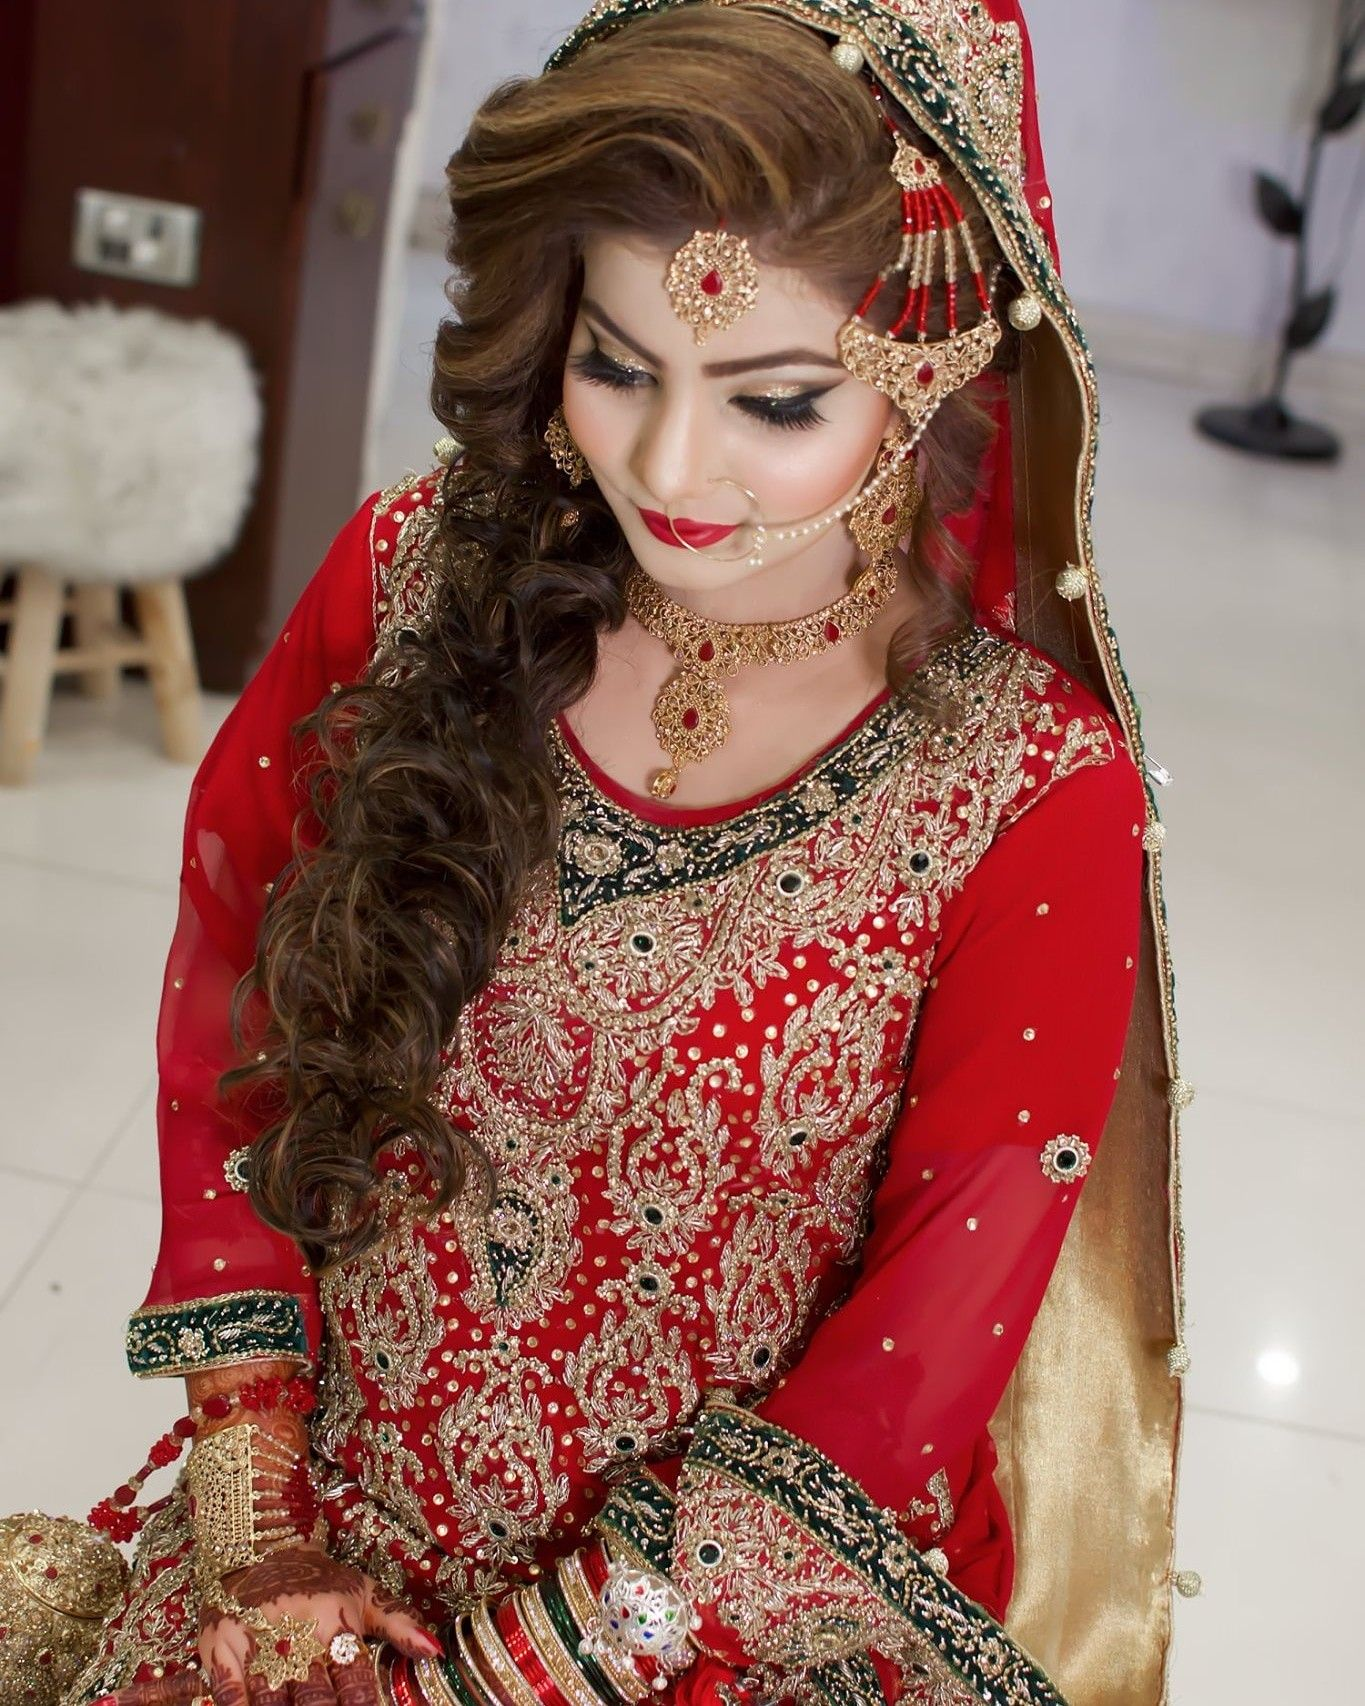 Bridal Makeup Bridal Makeup Looks Bridal Makeup Hair And Makeup Artist